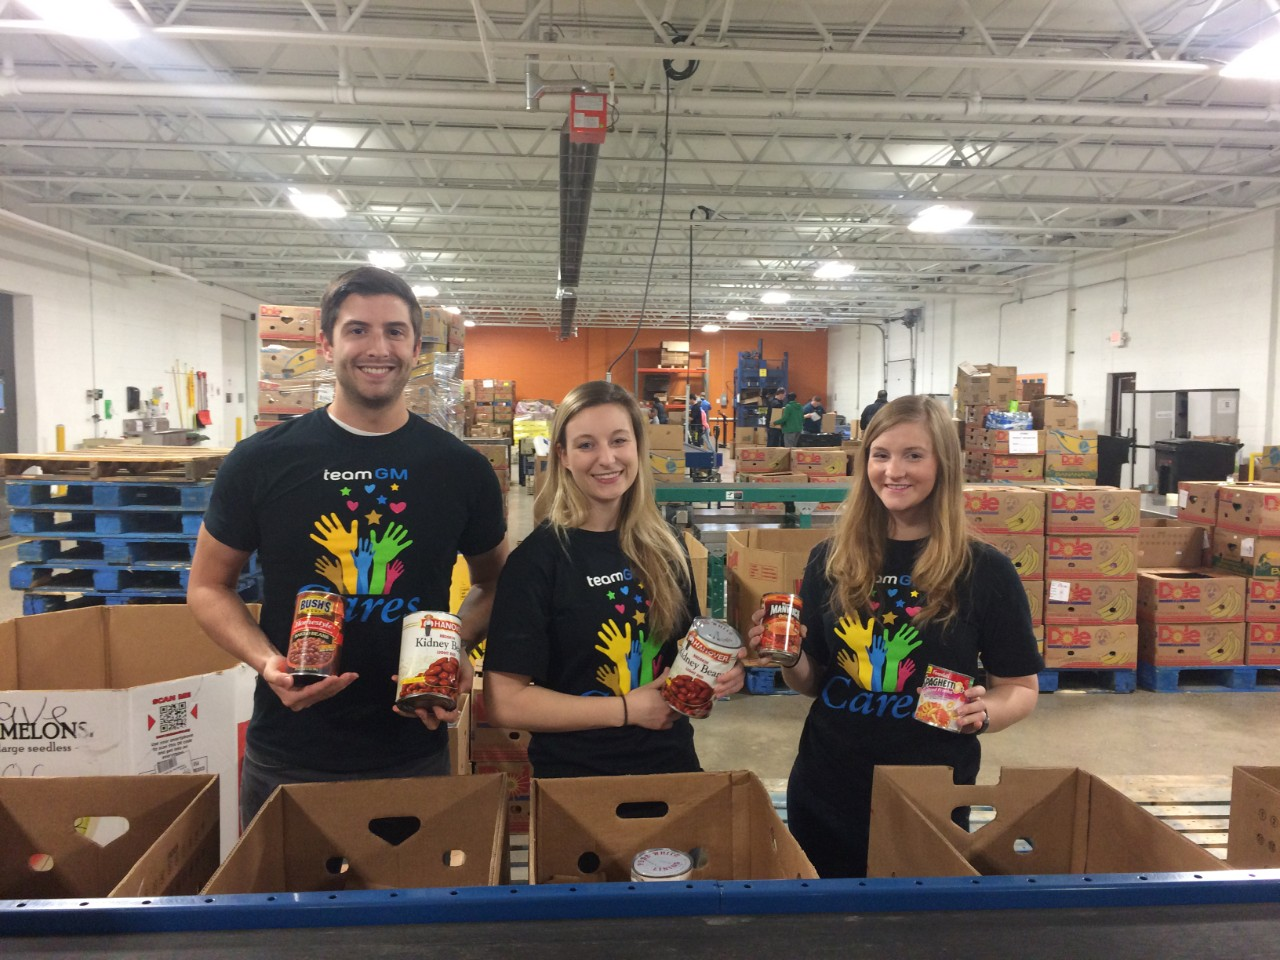 General Motors Gives Back With Teamgm Cares Week The